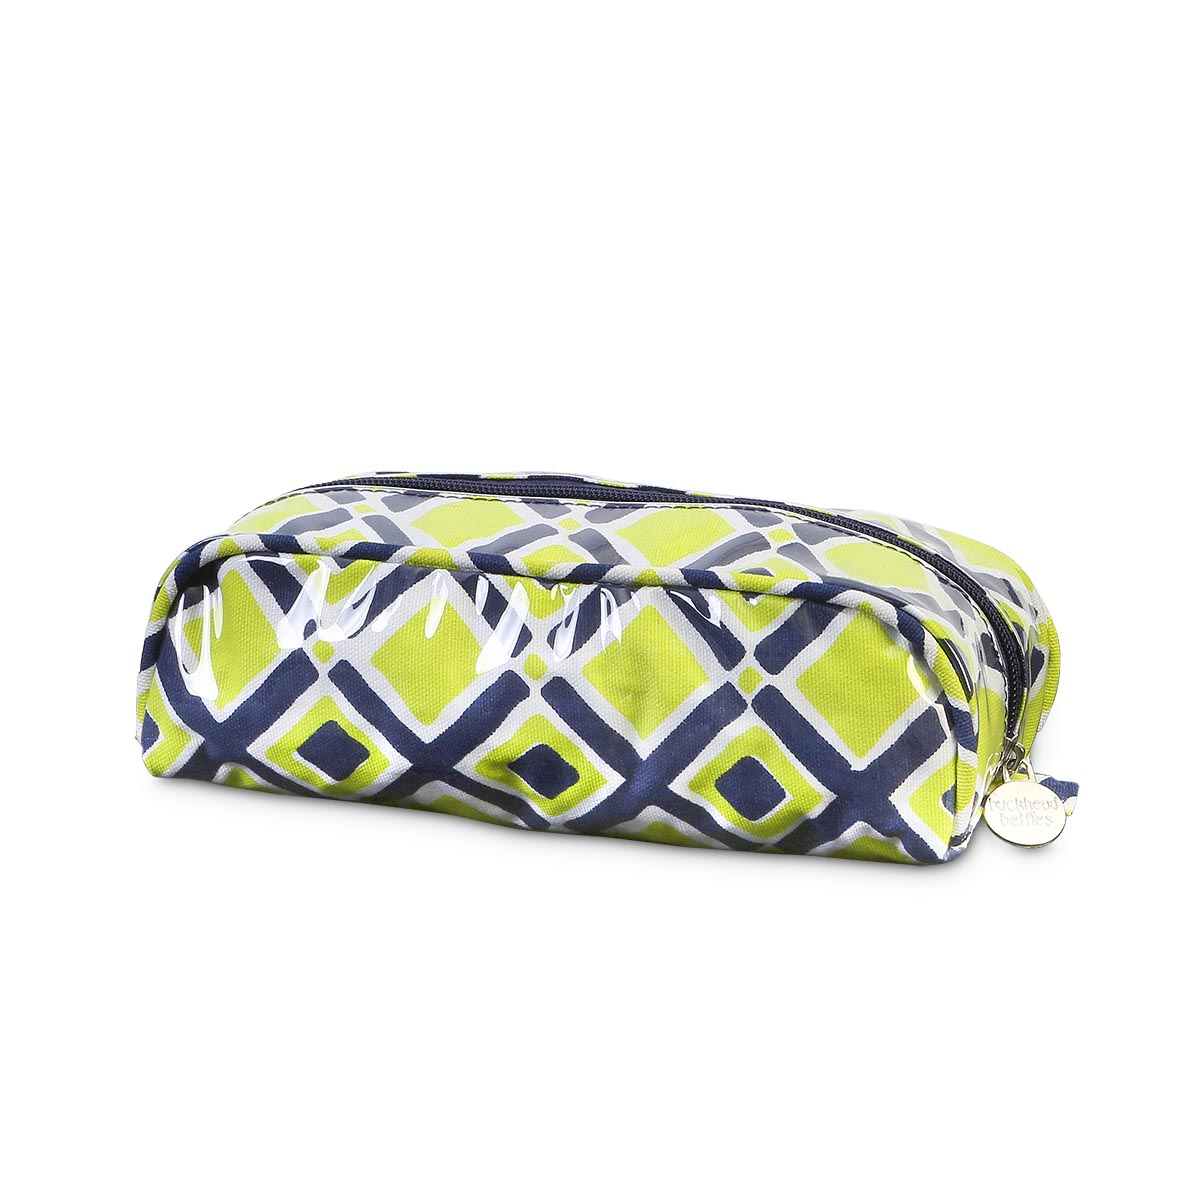 times square navy/lime pencil and brush pouch